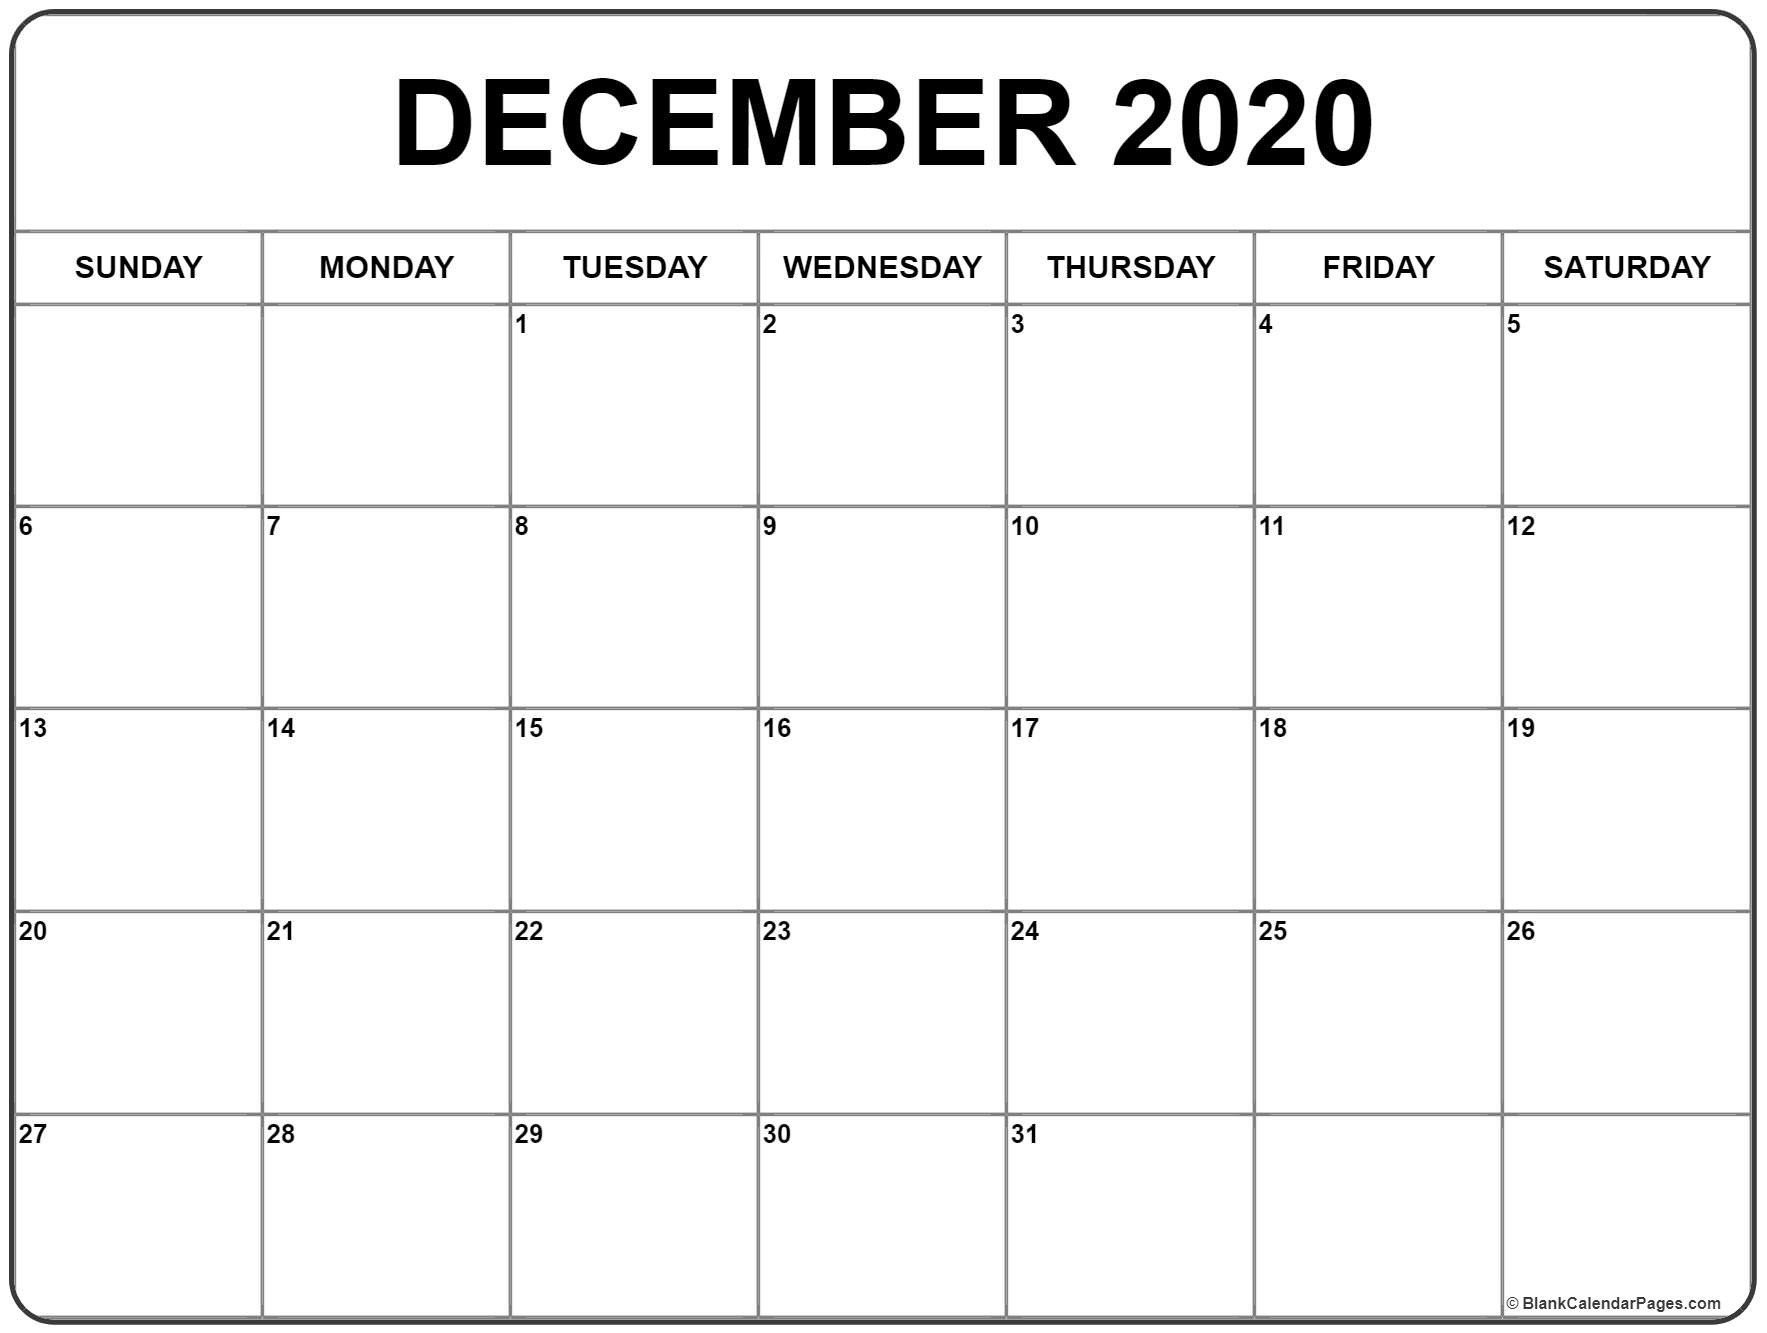 January Thru December 2020 Printable Monthly Calendar  2020 Calendar Template With Catholic Holidays